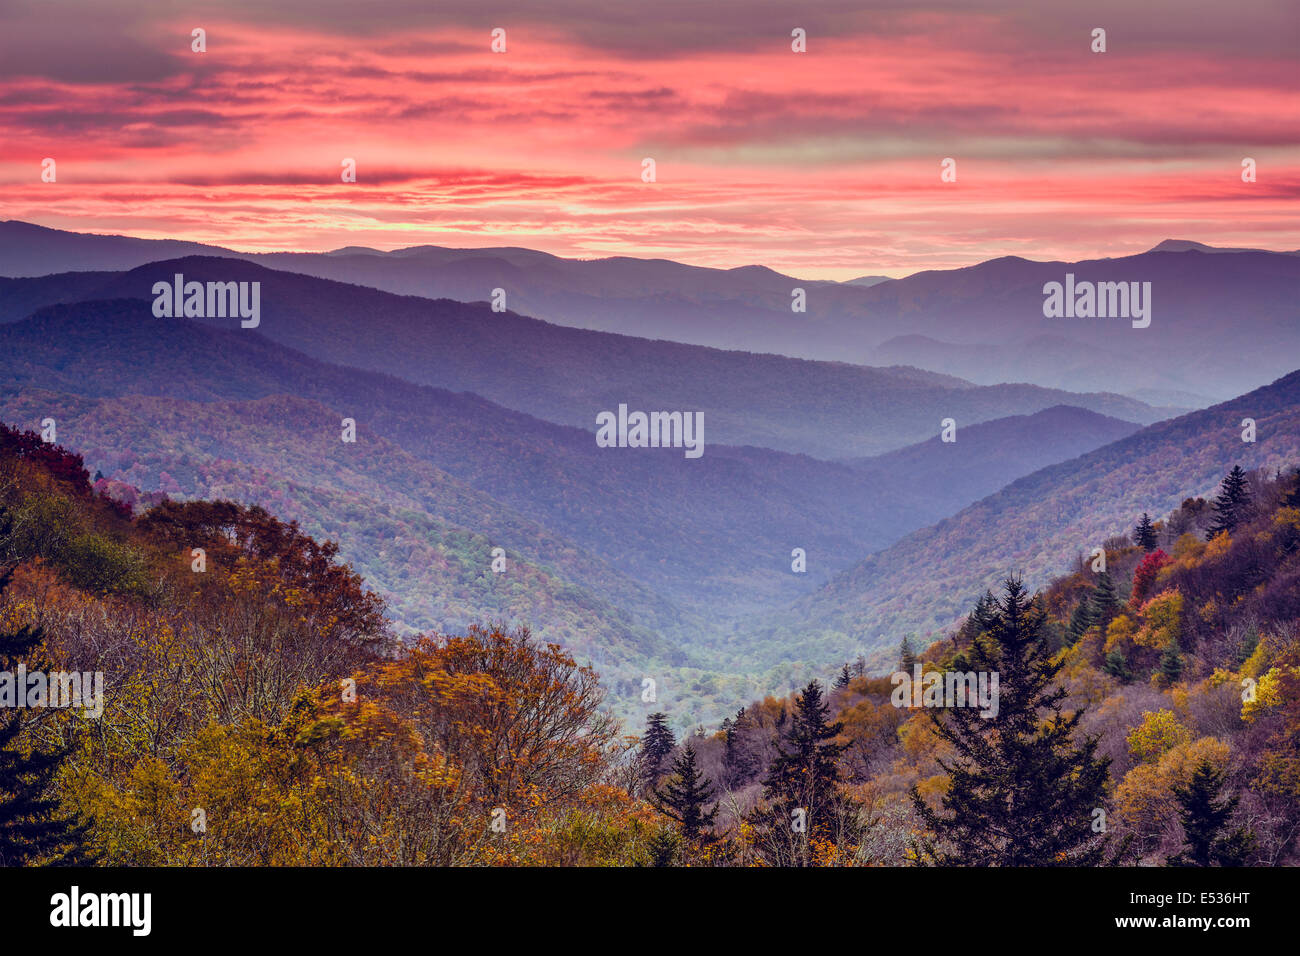 Dawn in the Smoky Mountains National Park, Tennessee, USA. - Stock Image